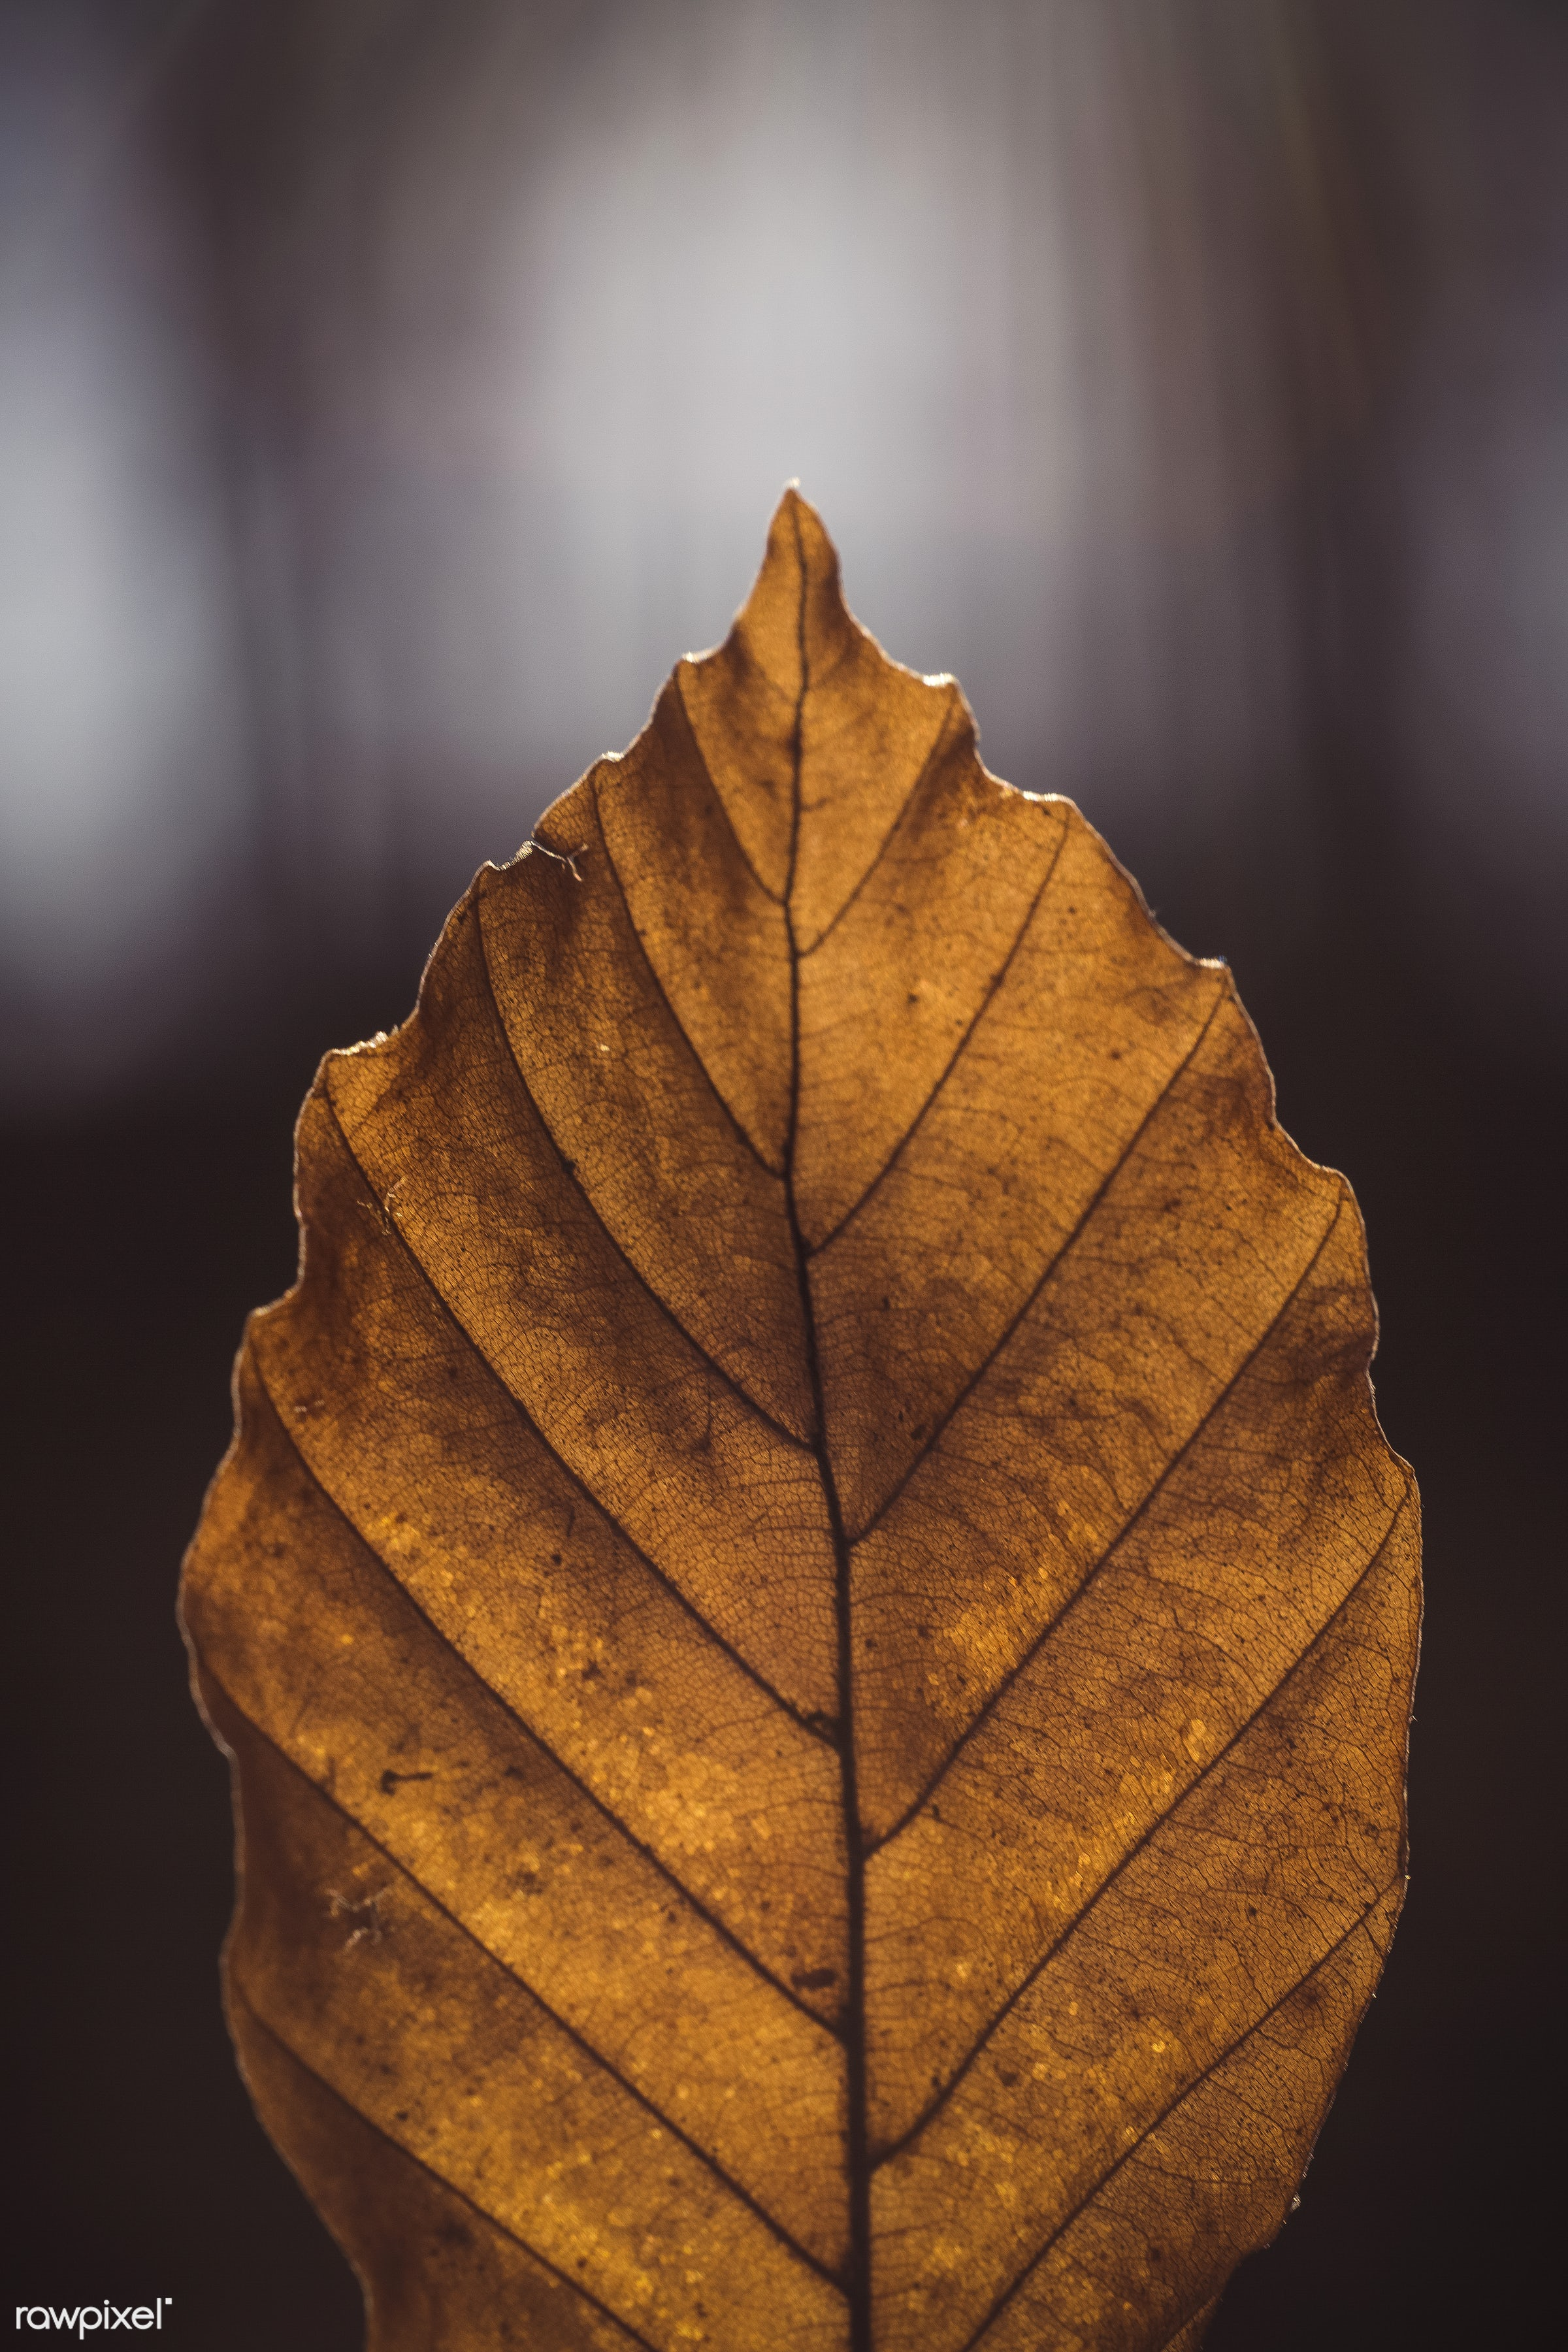 Yellow elm leaf - texture, autumn, botany, cc0, color, dry, fall, forest, leaf, natural, nature, october, season, september...